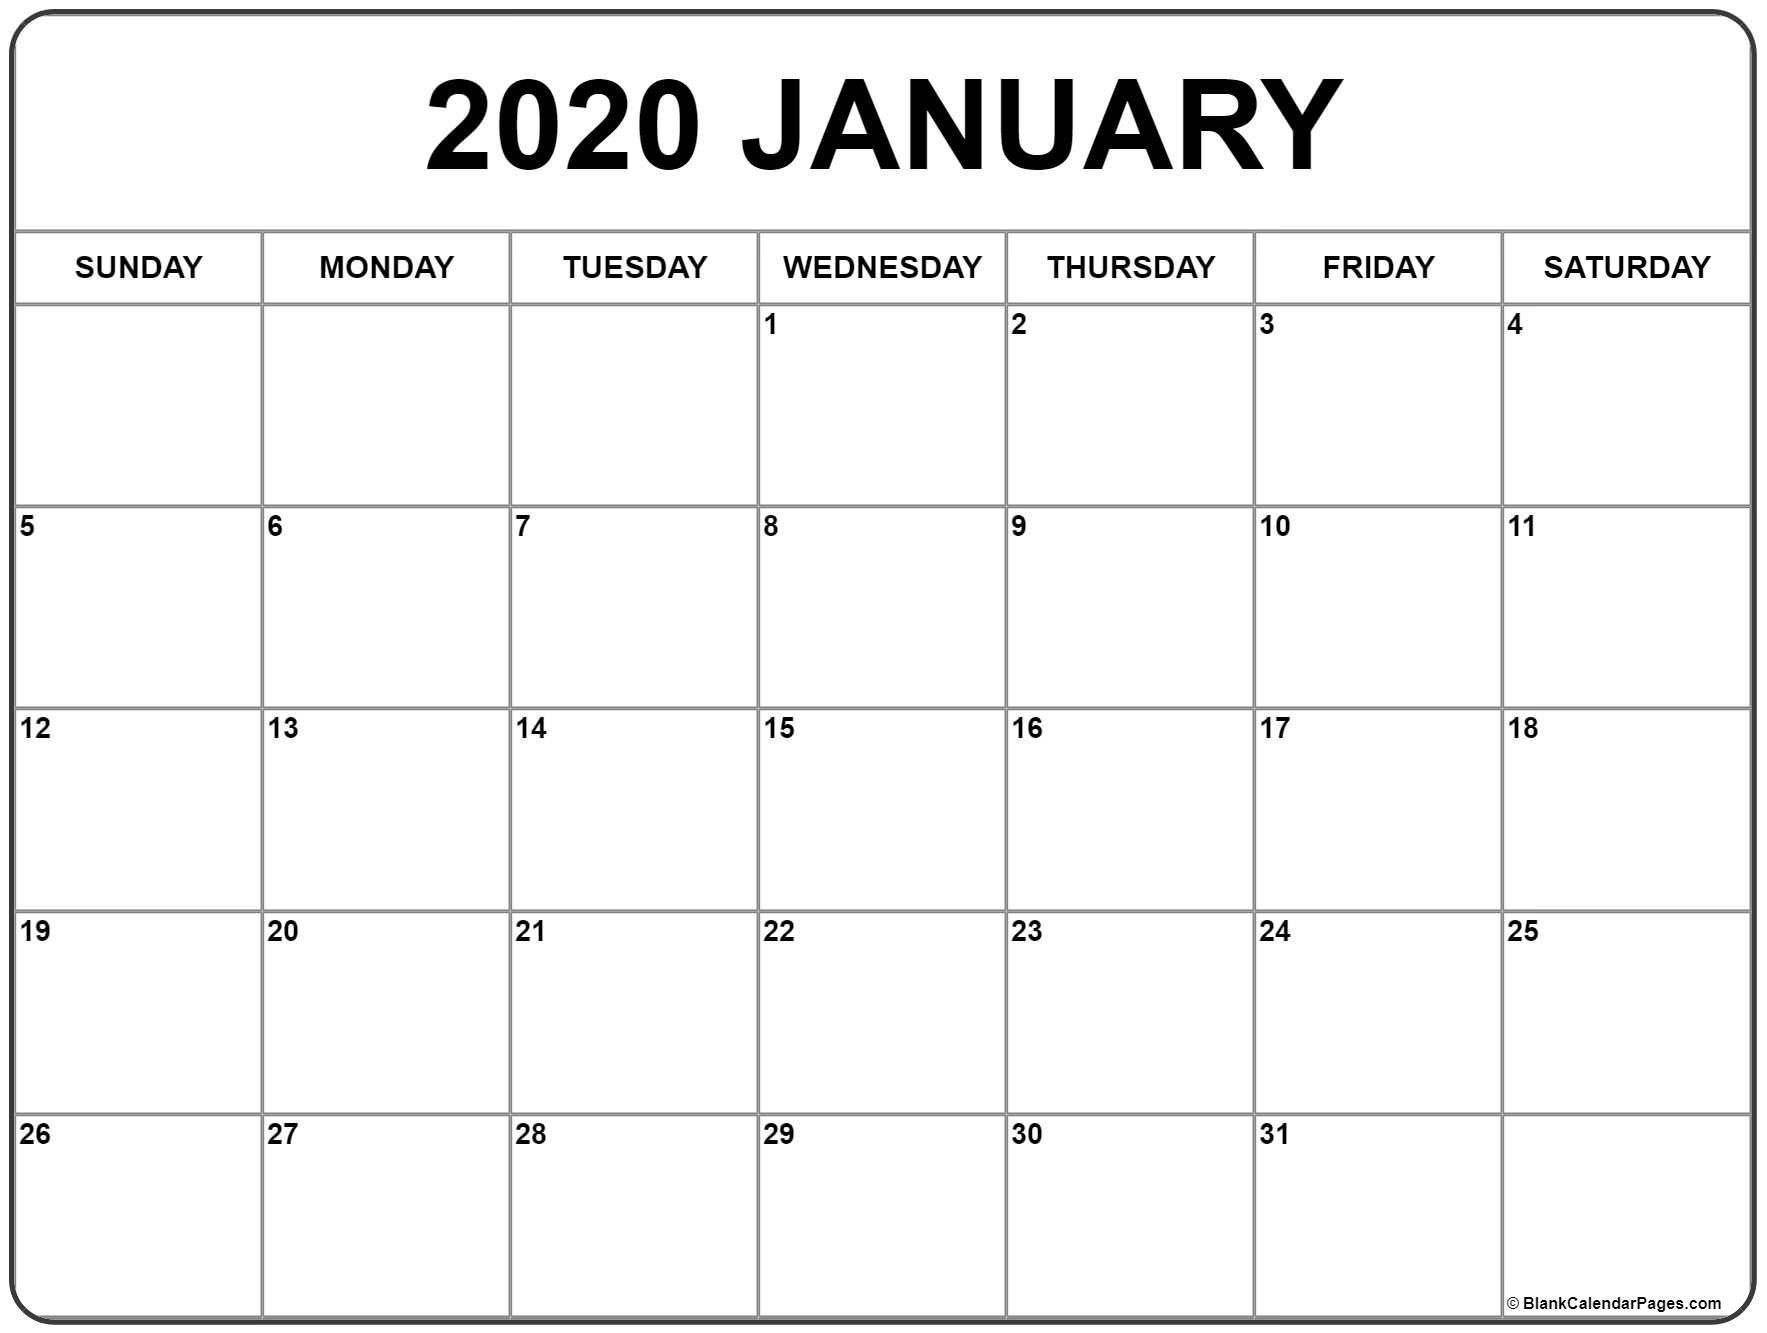 January 2020 Calendar | Free Printable Monthly Calendars-Free Printable January 2020 Calendar